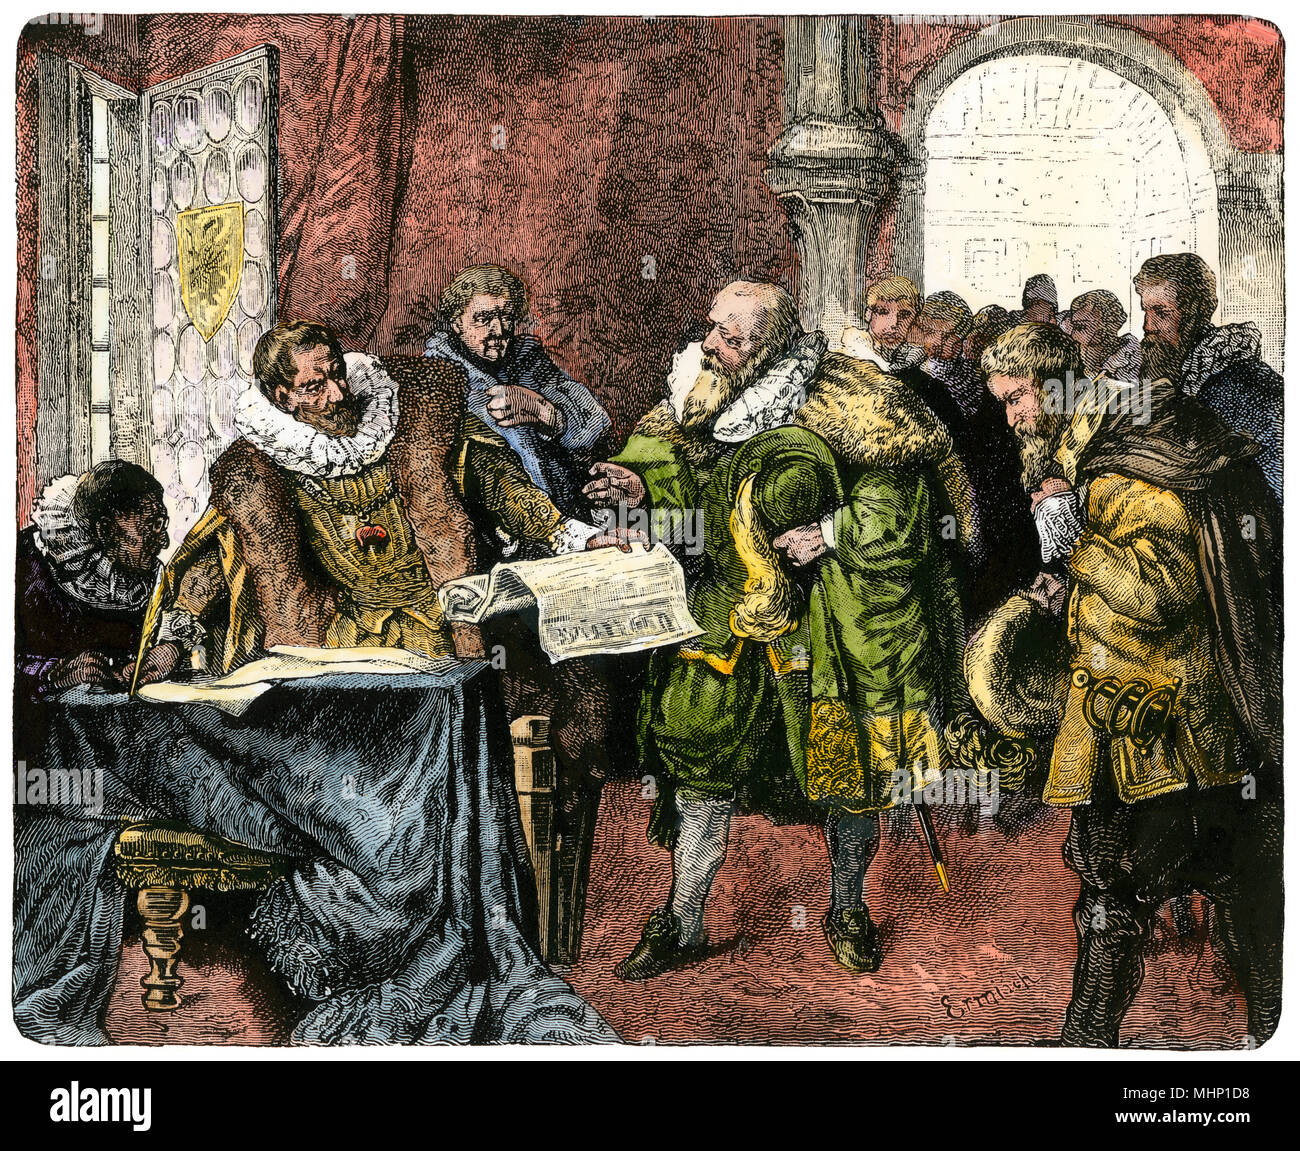 Holy Roman Emperor Rudolph II signs the Letter of Majesty giving